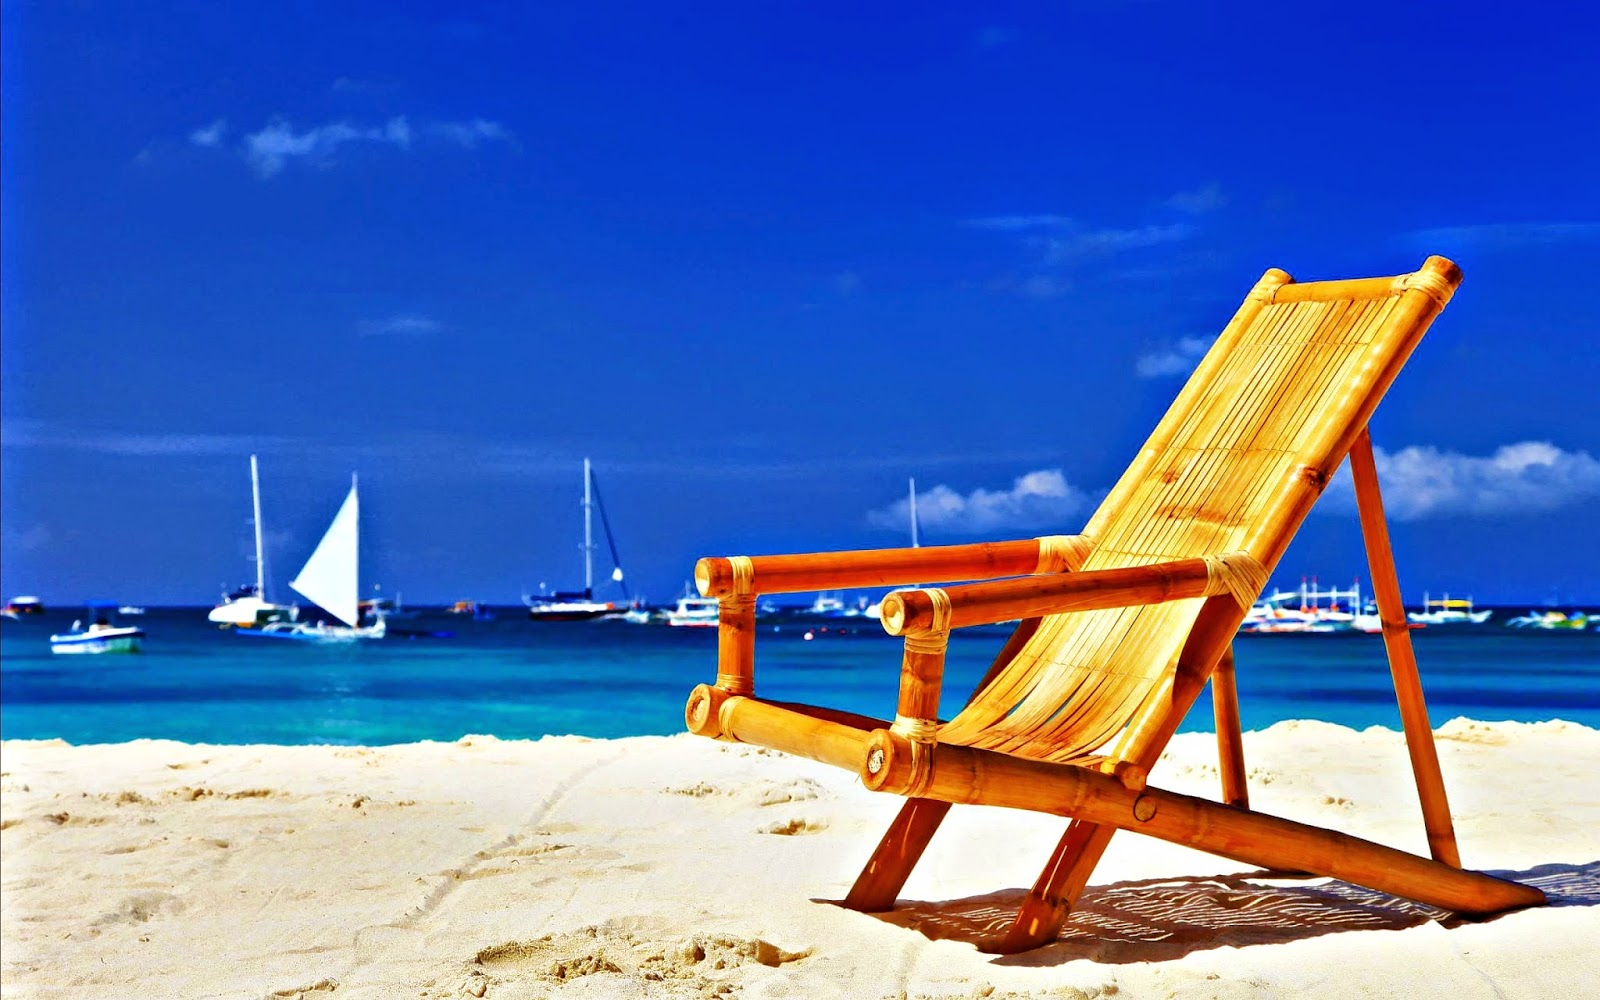 Summerbeach chair wallpapers HD  Desktop Wallpapers free